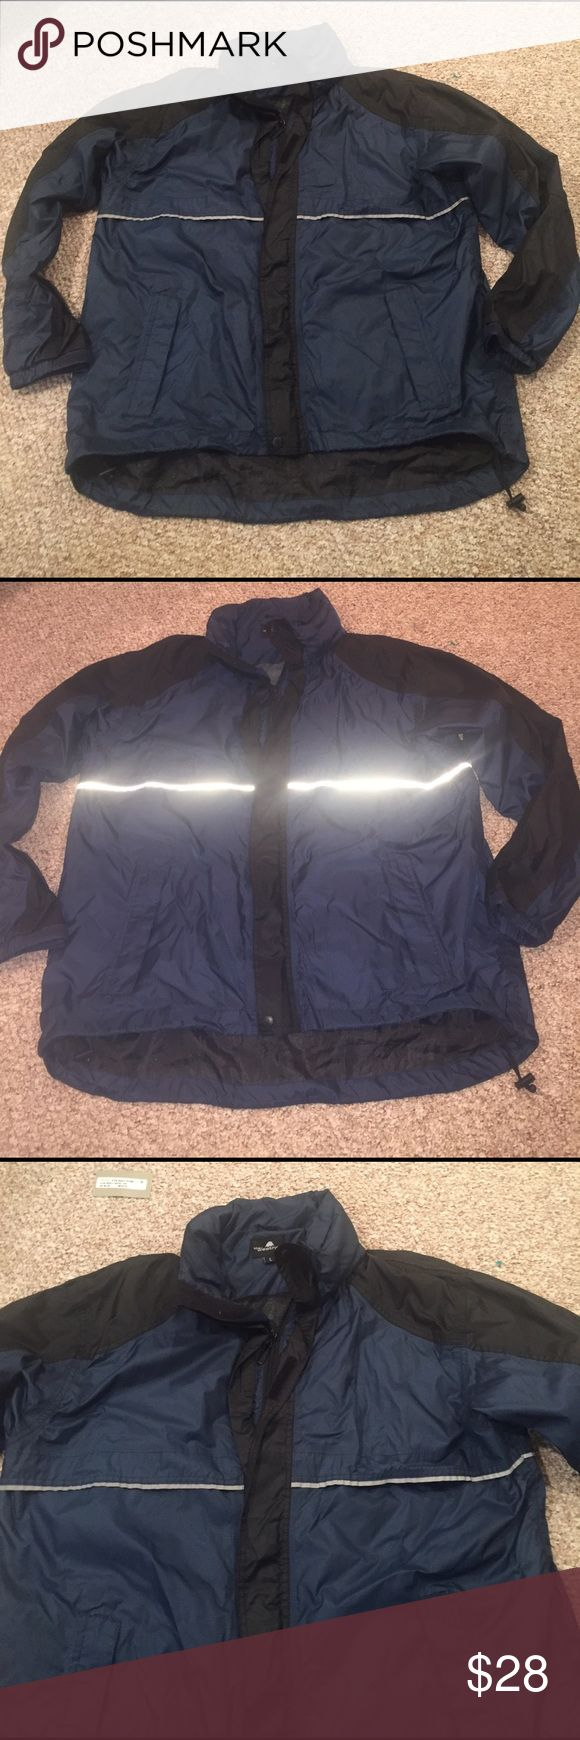 "The weather co Navy Blue anorak windbreaker coat l Great anorak by a he weather cold.  It zips up the front and then velcros closed.  Roll up hood.  Colors are Navy and black.  Chest 53"" length 30"" the weather co Jackets & Coats Windbreakers"